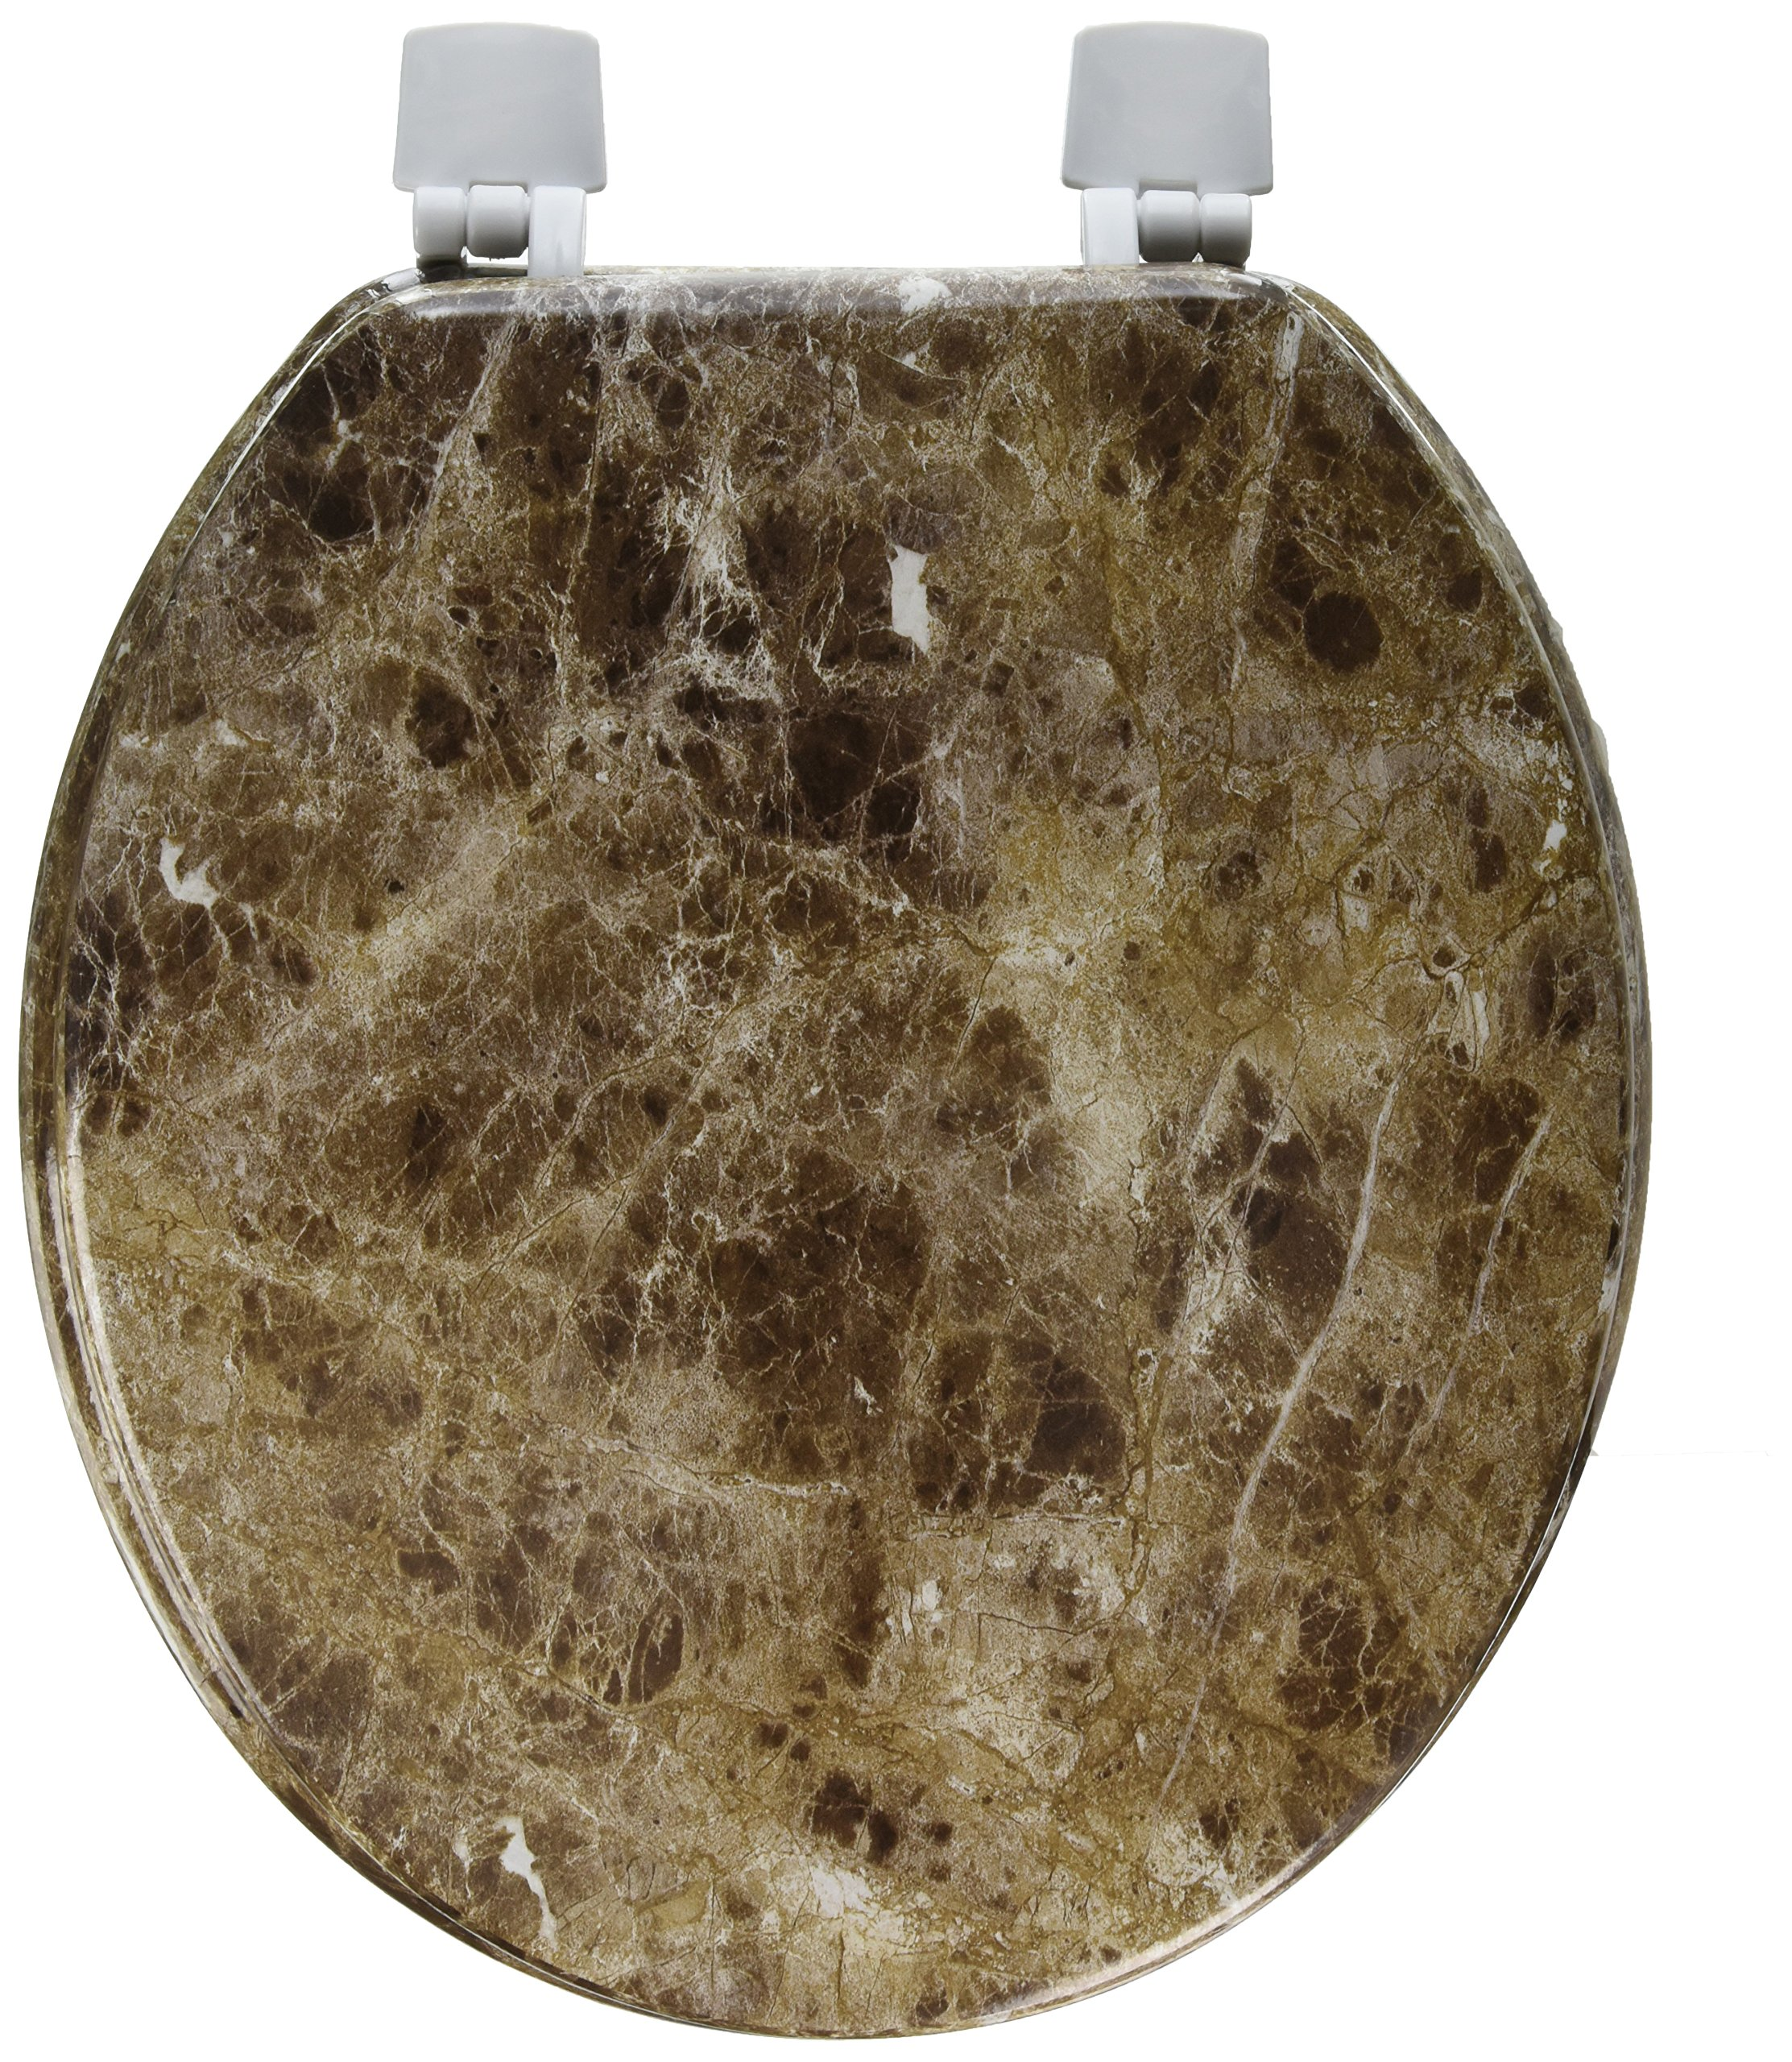 Uniware 17 Inch Marble Pattern Toilet Seat (Brown) by UNIWARE